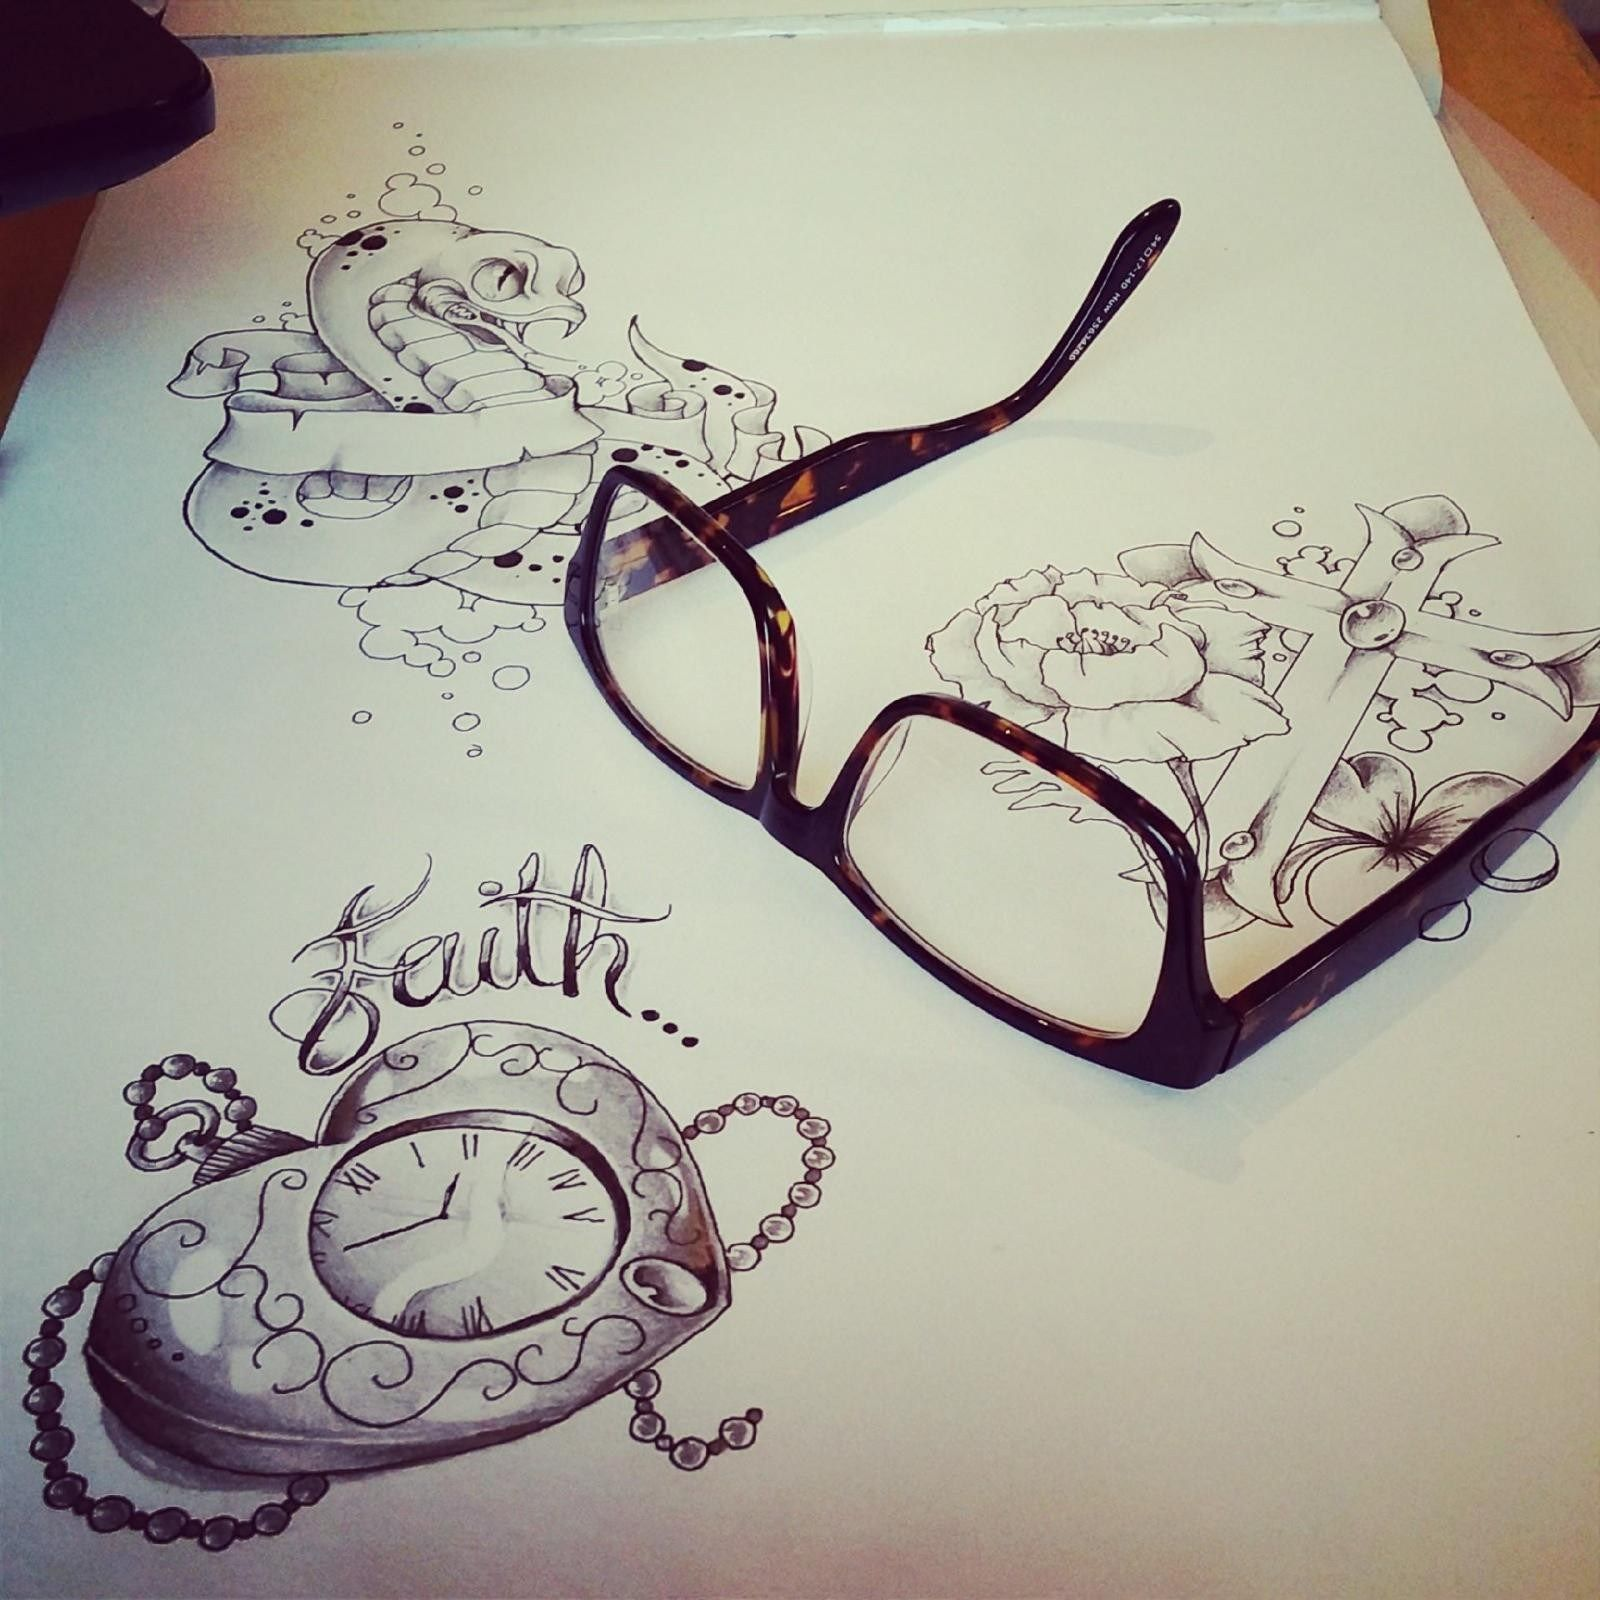 Inspirational Drawings: 24 Inspirational Meaningful Drawings Sketches Beautiful